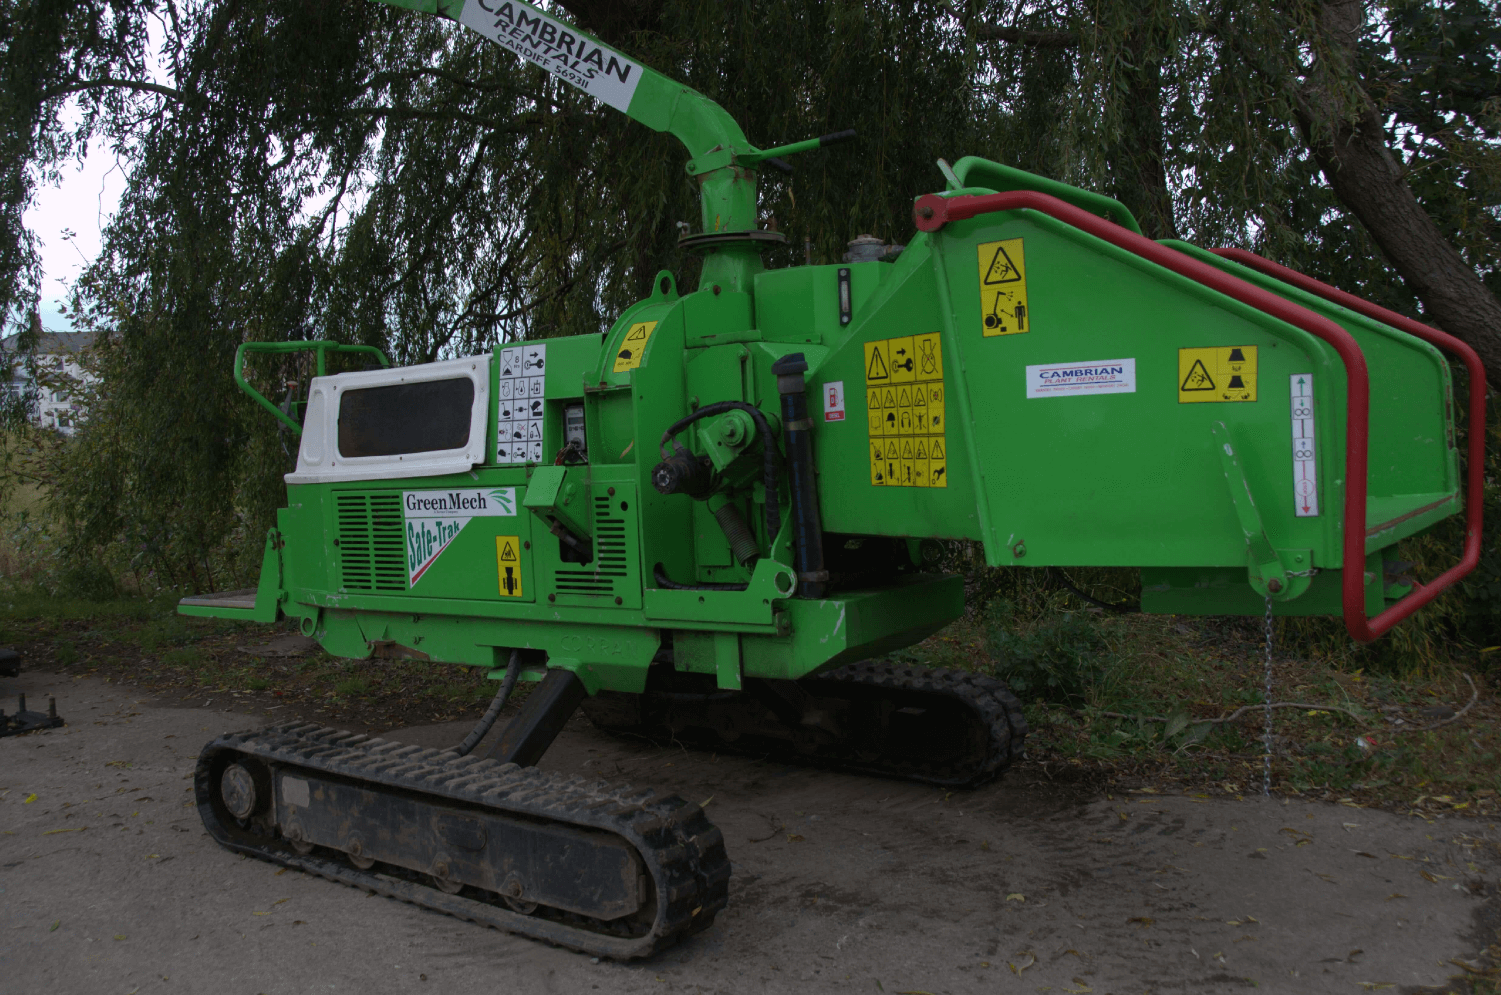 GREENMECH SAFE-Trak 19-28 MK1 8inch Tracked Wood Chipper 2